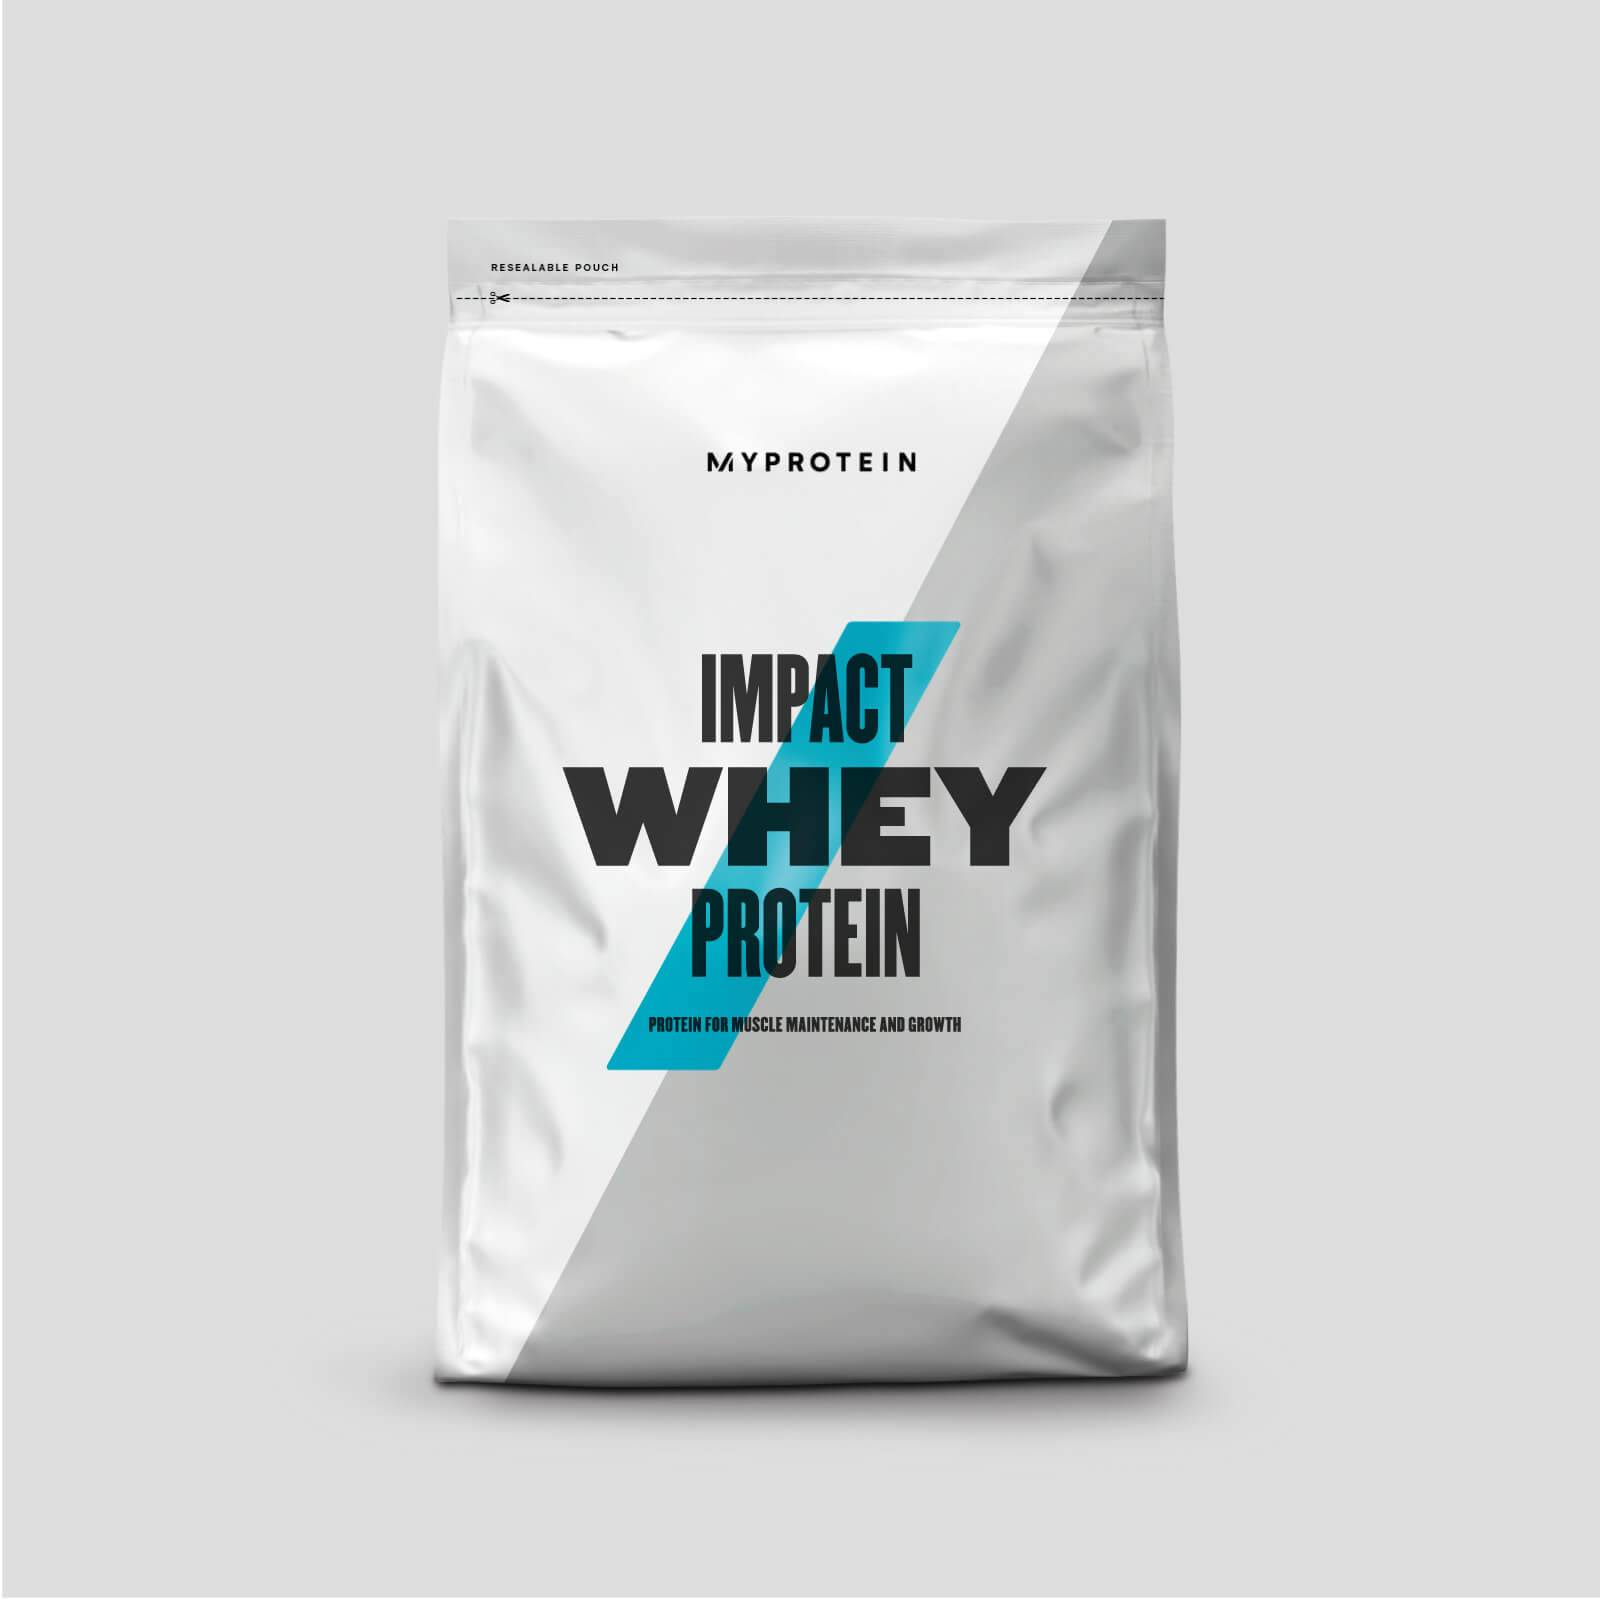 Myprotein Impact Whey Protein - 250g - Chocolat Onctueux